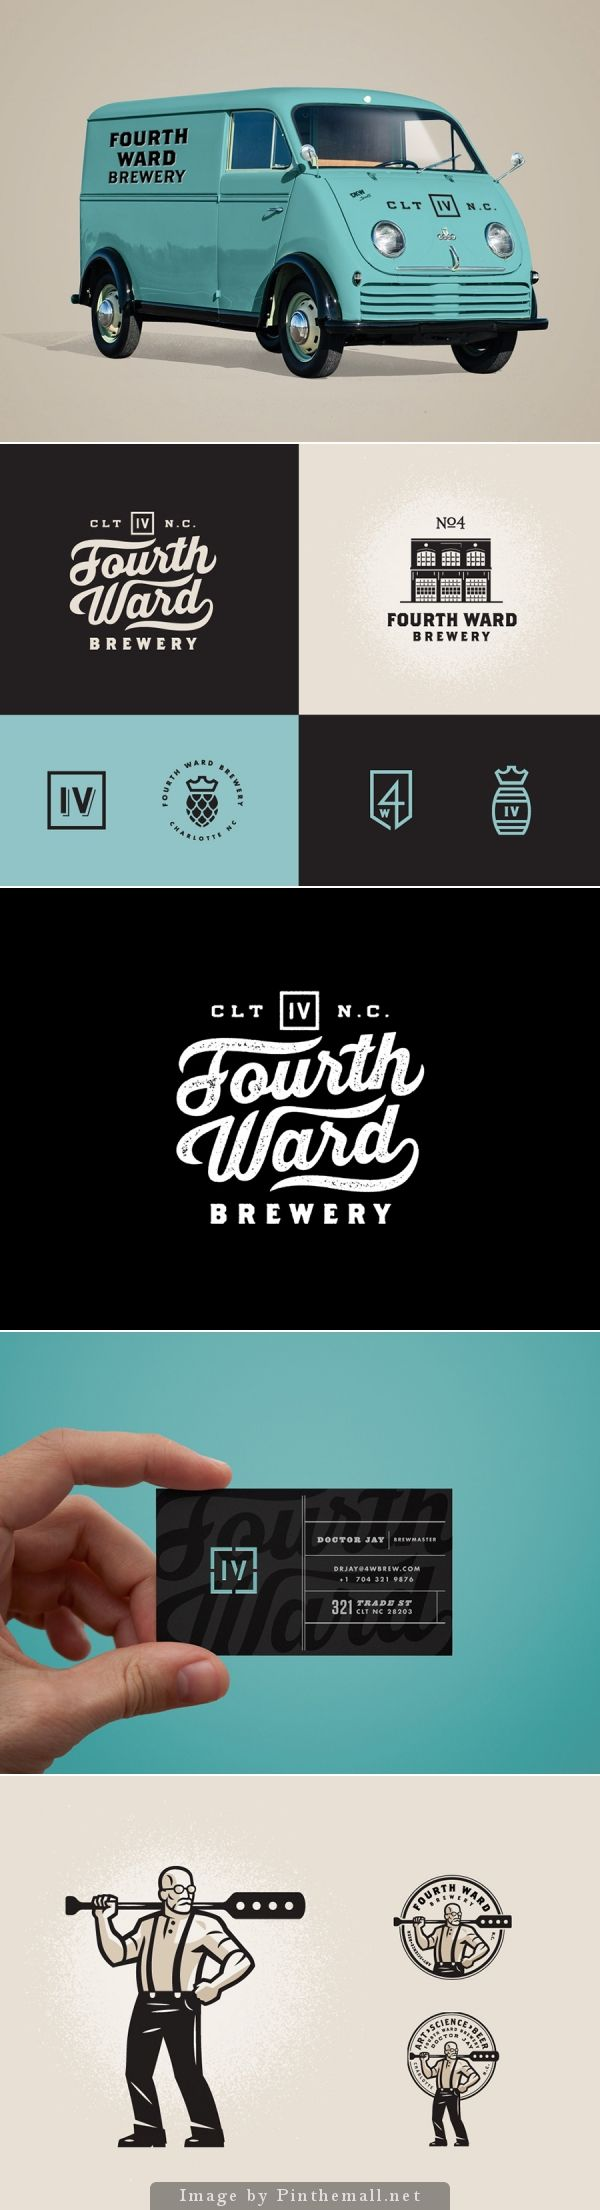 Fourth Ward Brewery #design #branding